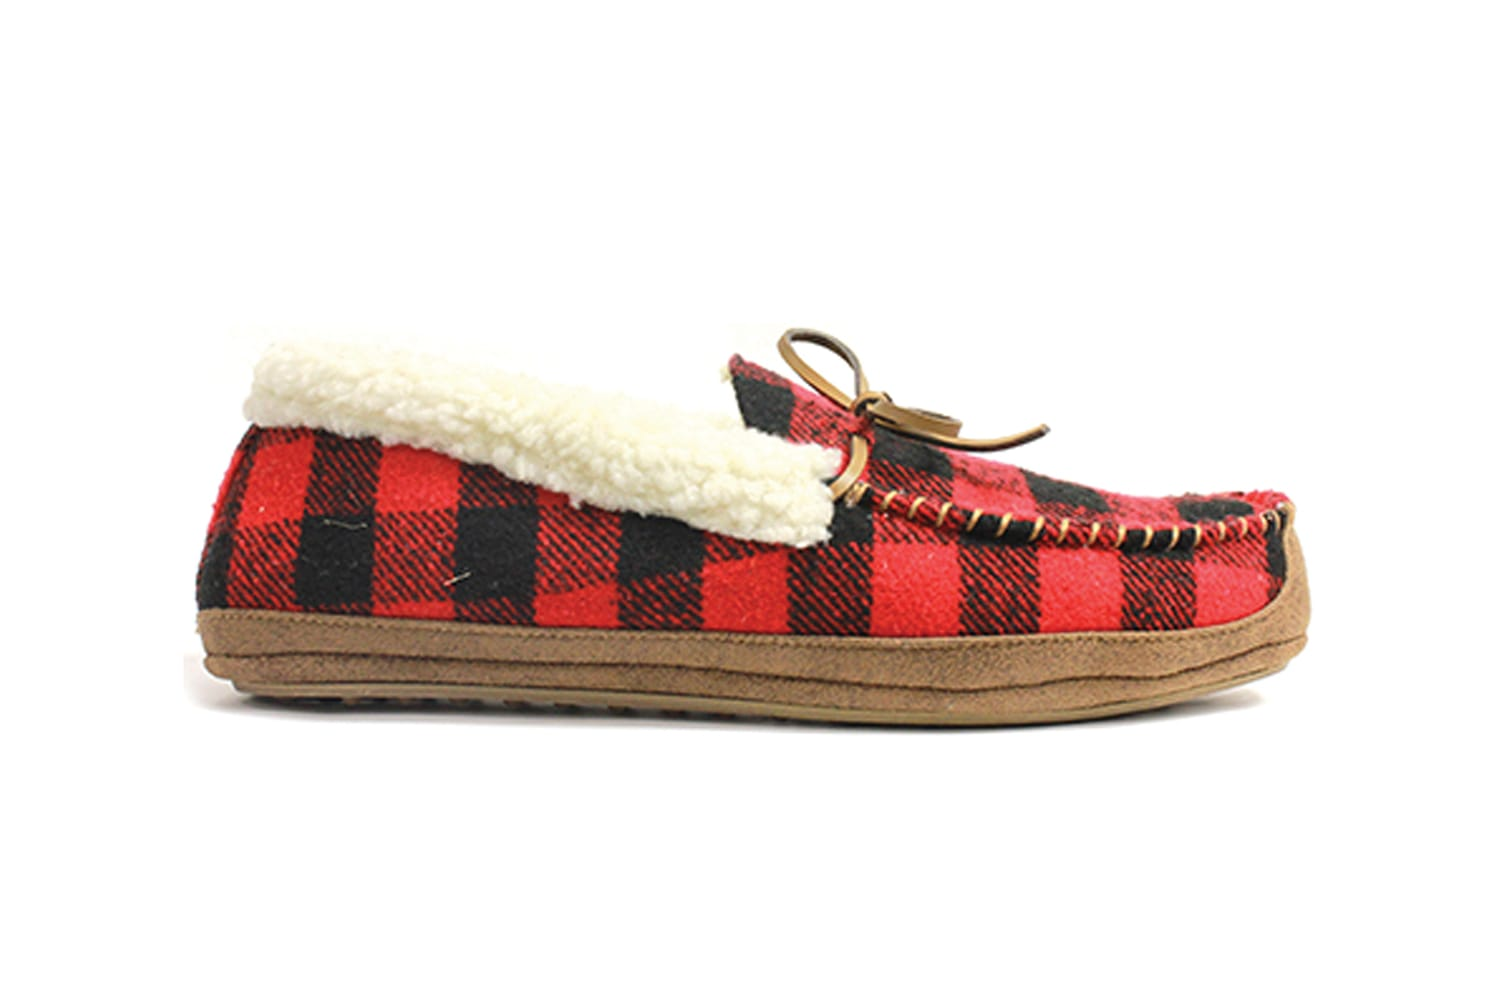 Buffalo Plaid Slippers